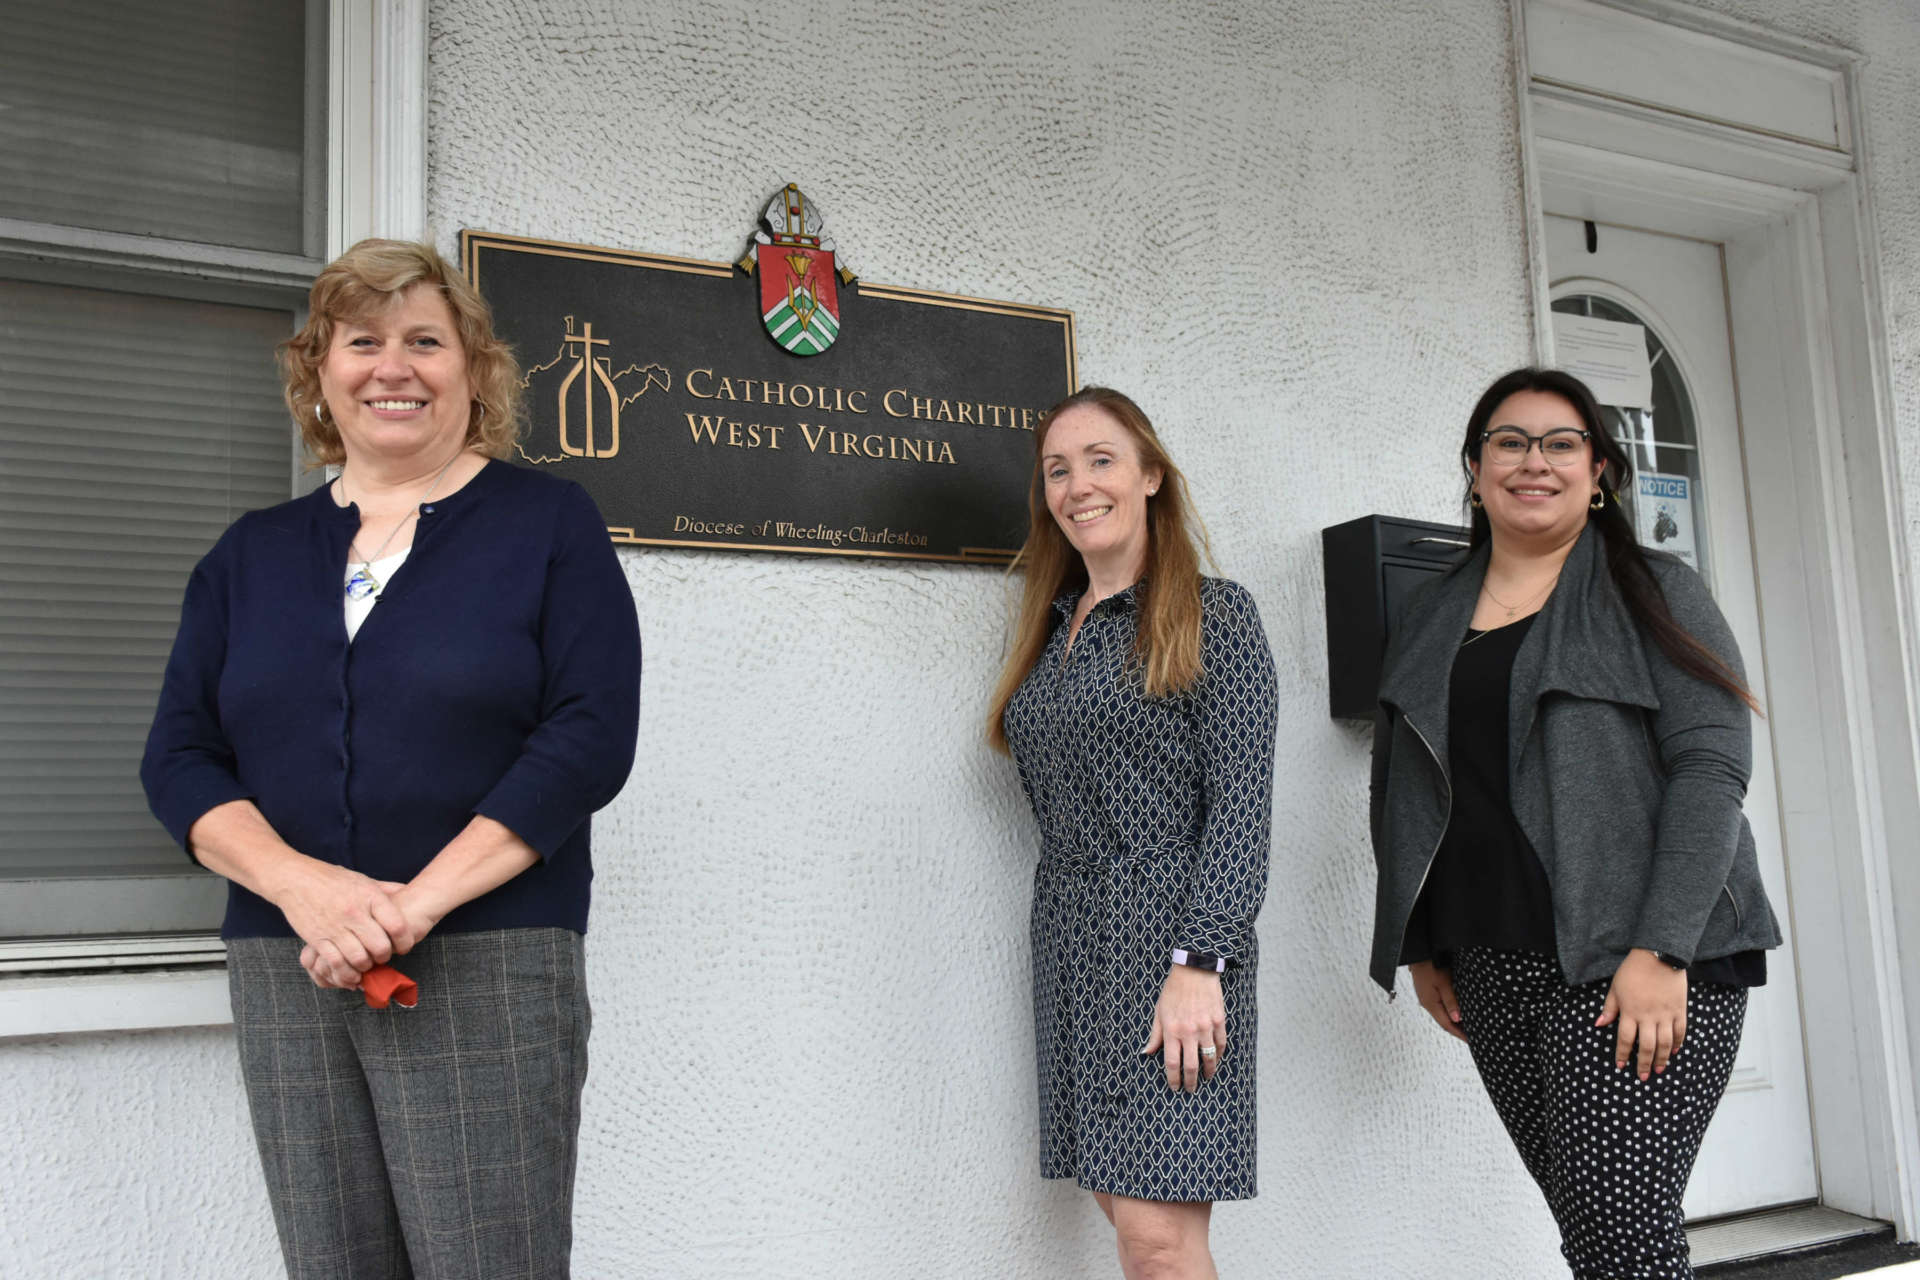 Pictured (l. to r.) are Trina Bartlett, eastern regional director Catholic Charities West Virginia; Siobhan Bertone program assistant; and Luci Hernandez, case manager.